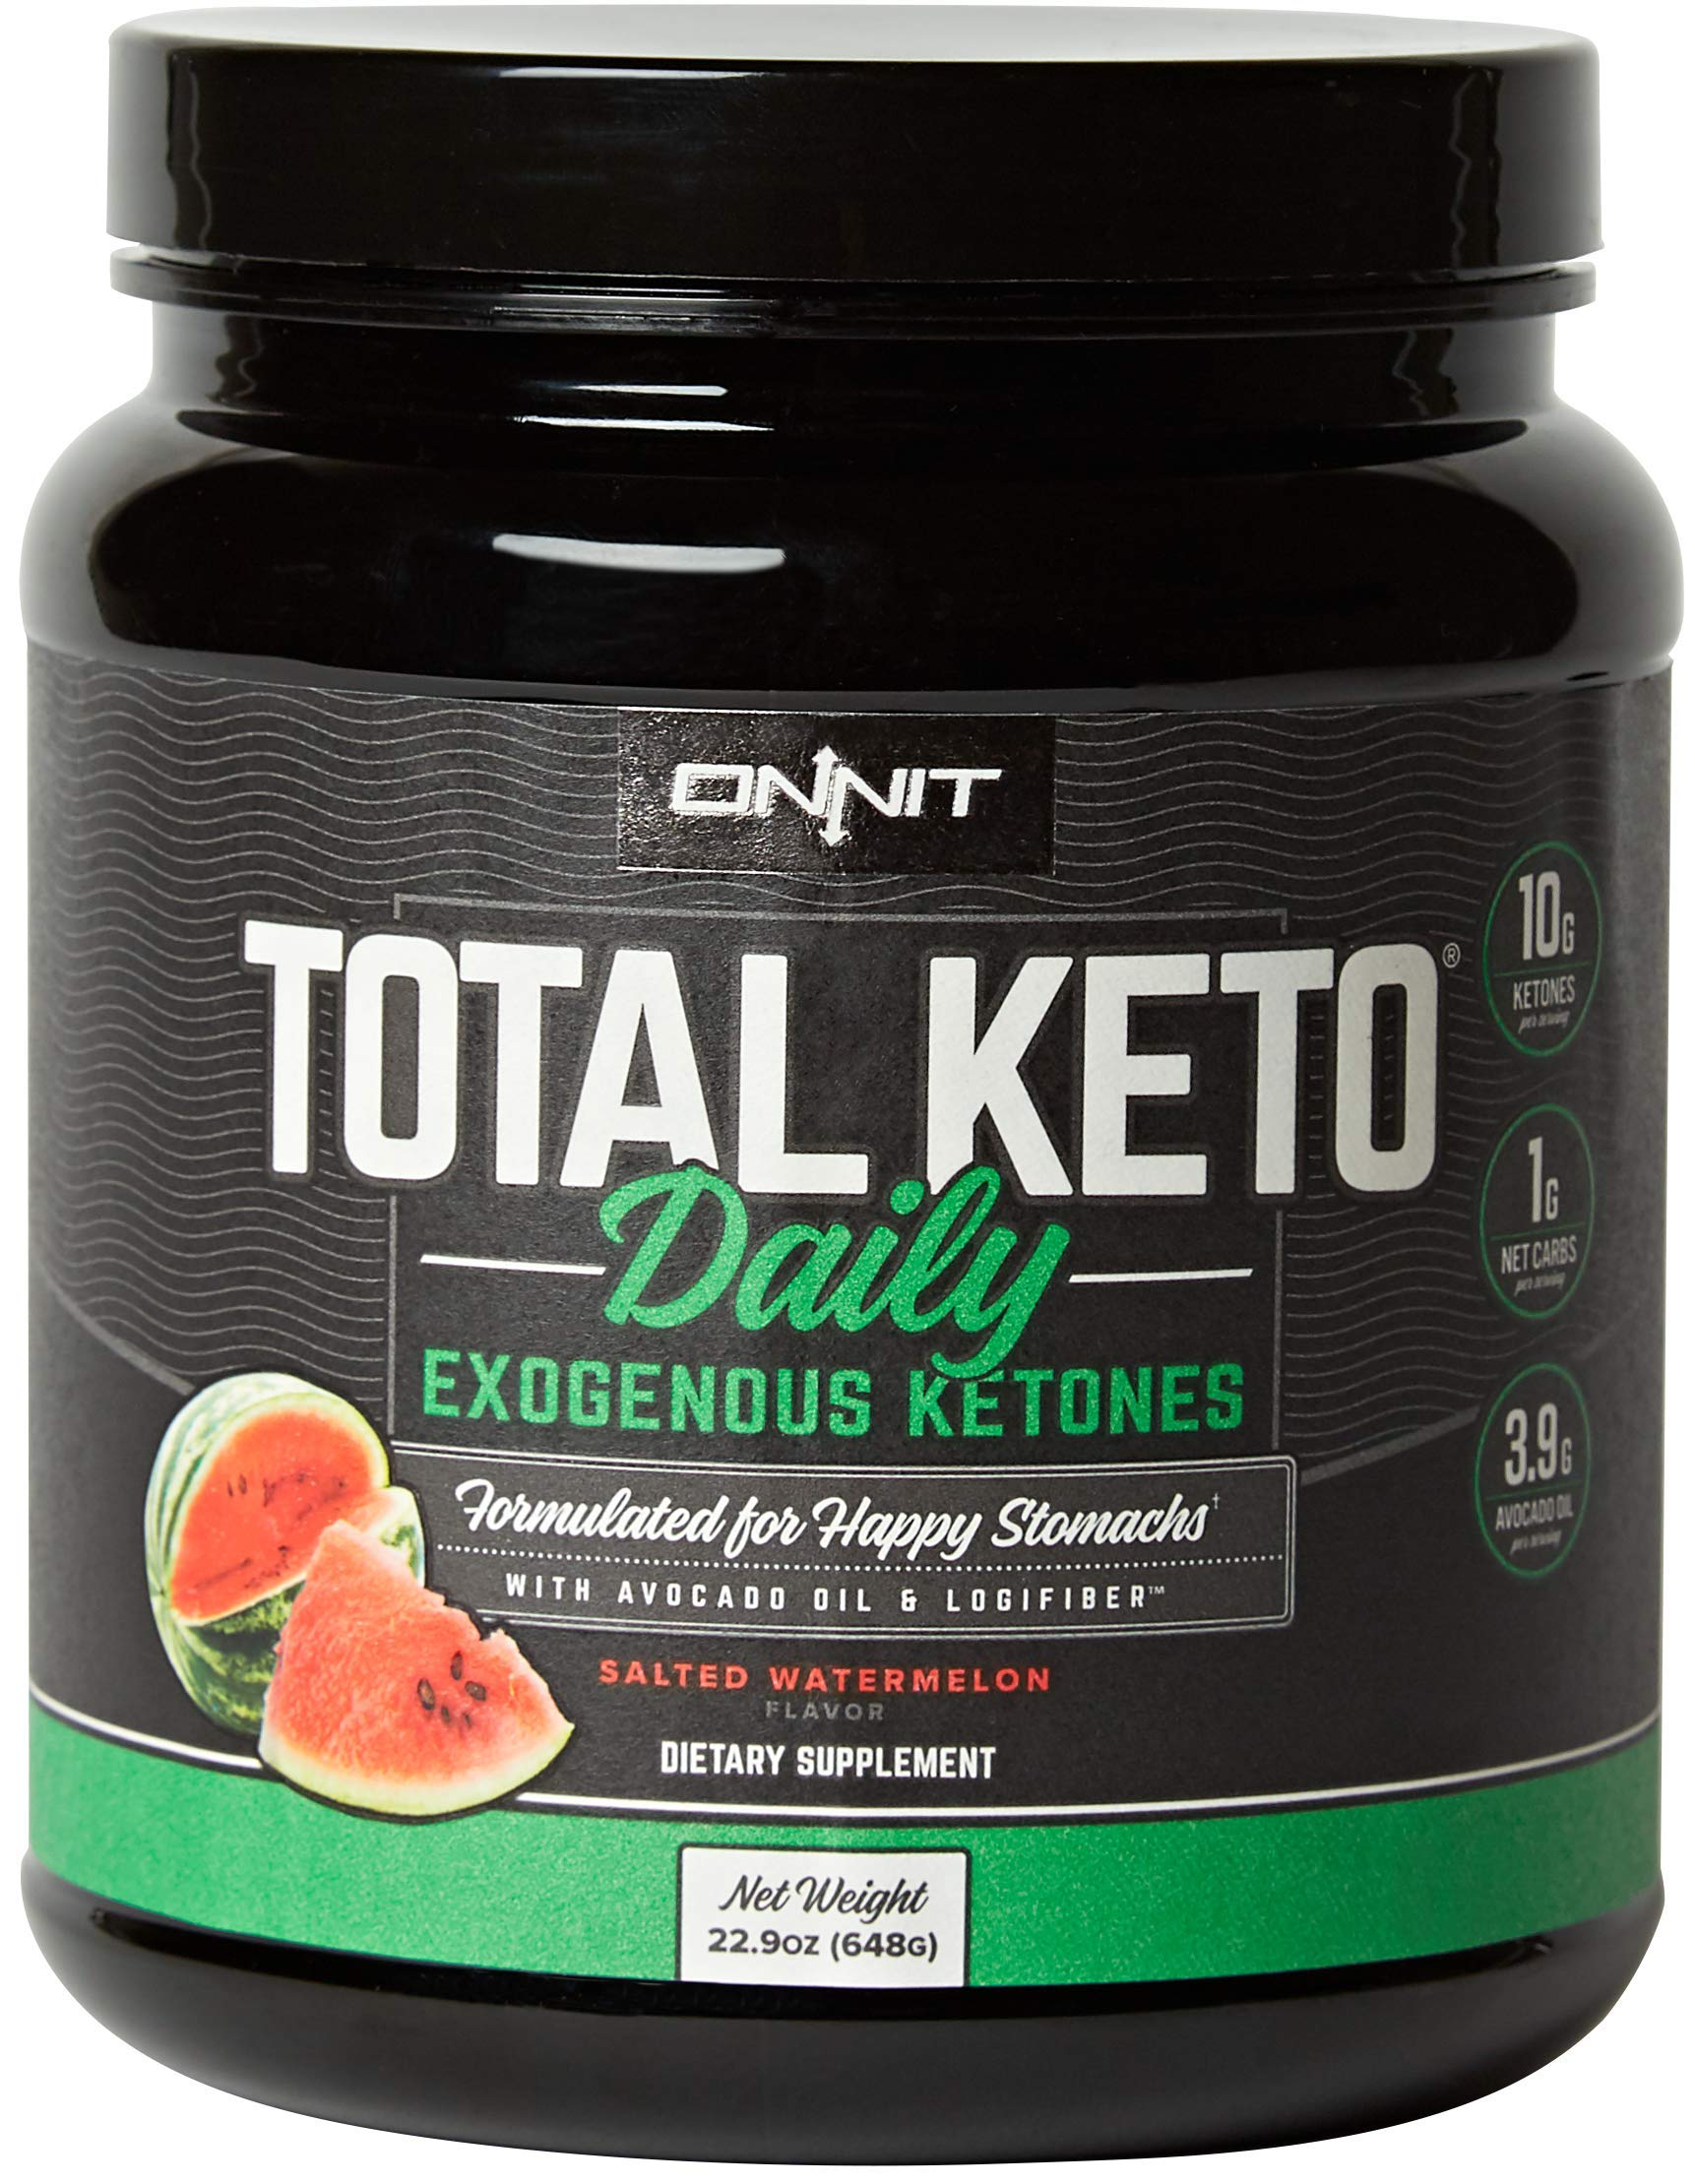 ONNIT Total Keto | Exogenous Ketones Supplement for Low Carb Diet | Premium Value Keto Supplement at 300g Ketone per Tub | Perfect Keto Fuel for Keto Shakes | Watermelon Flavor | 30 Servings by ONNIT